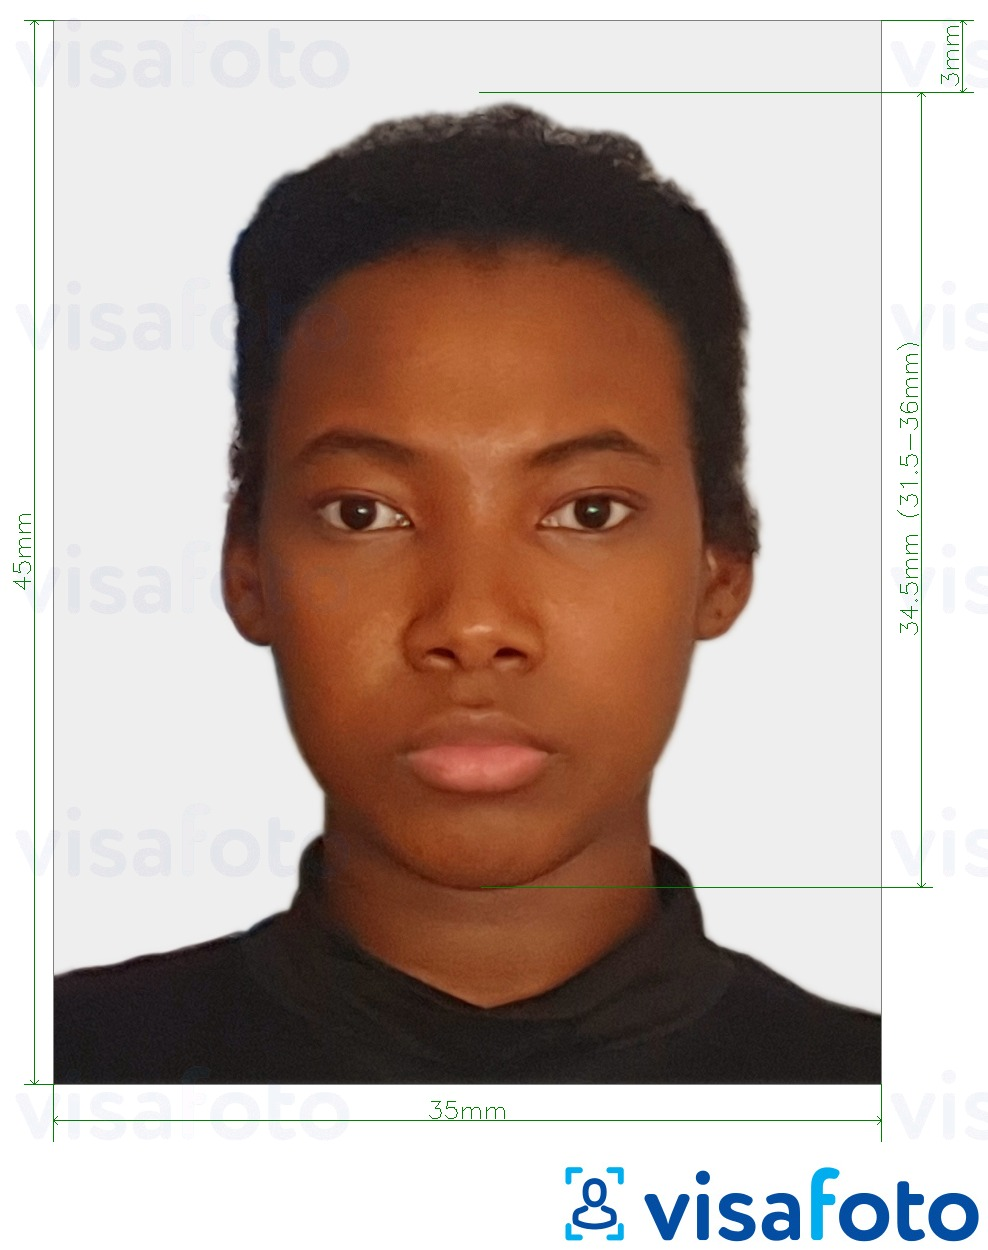 Example of photo for South Africa Passport 35x45 mm (3.5x4.5 cm) with exact size specification